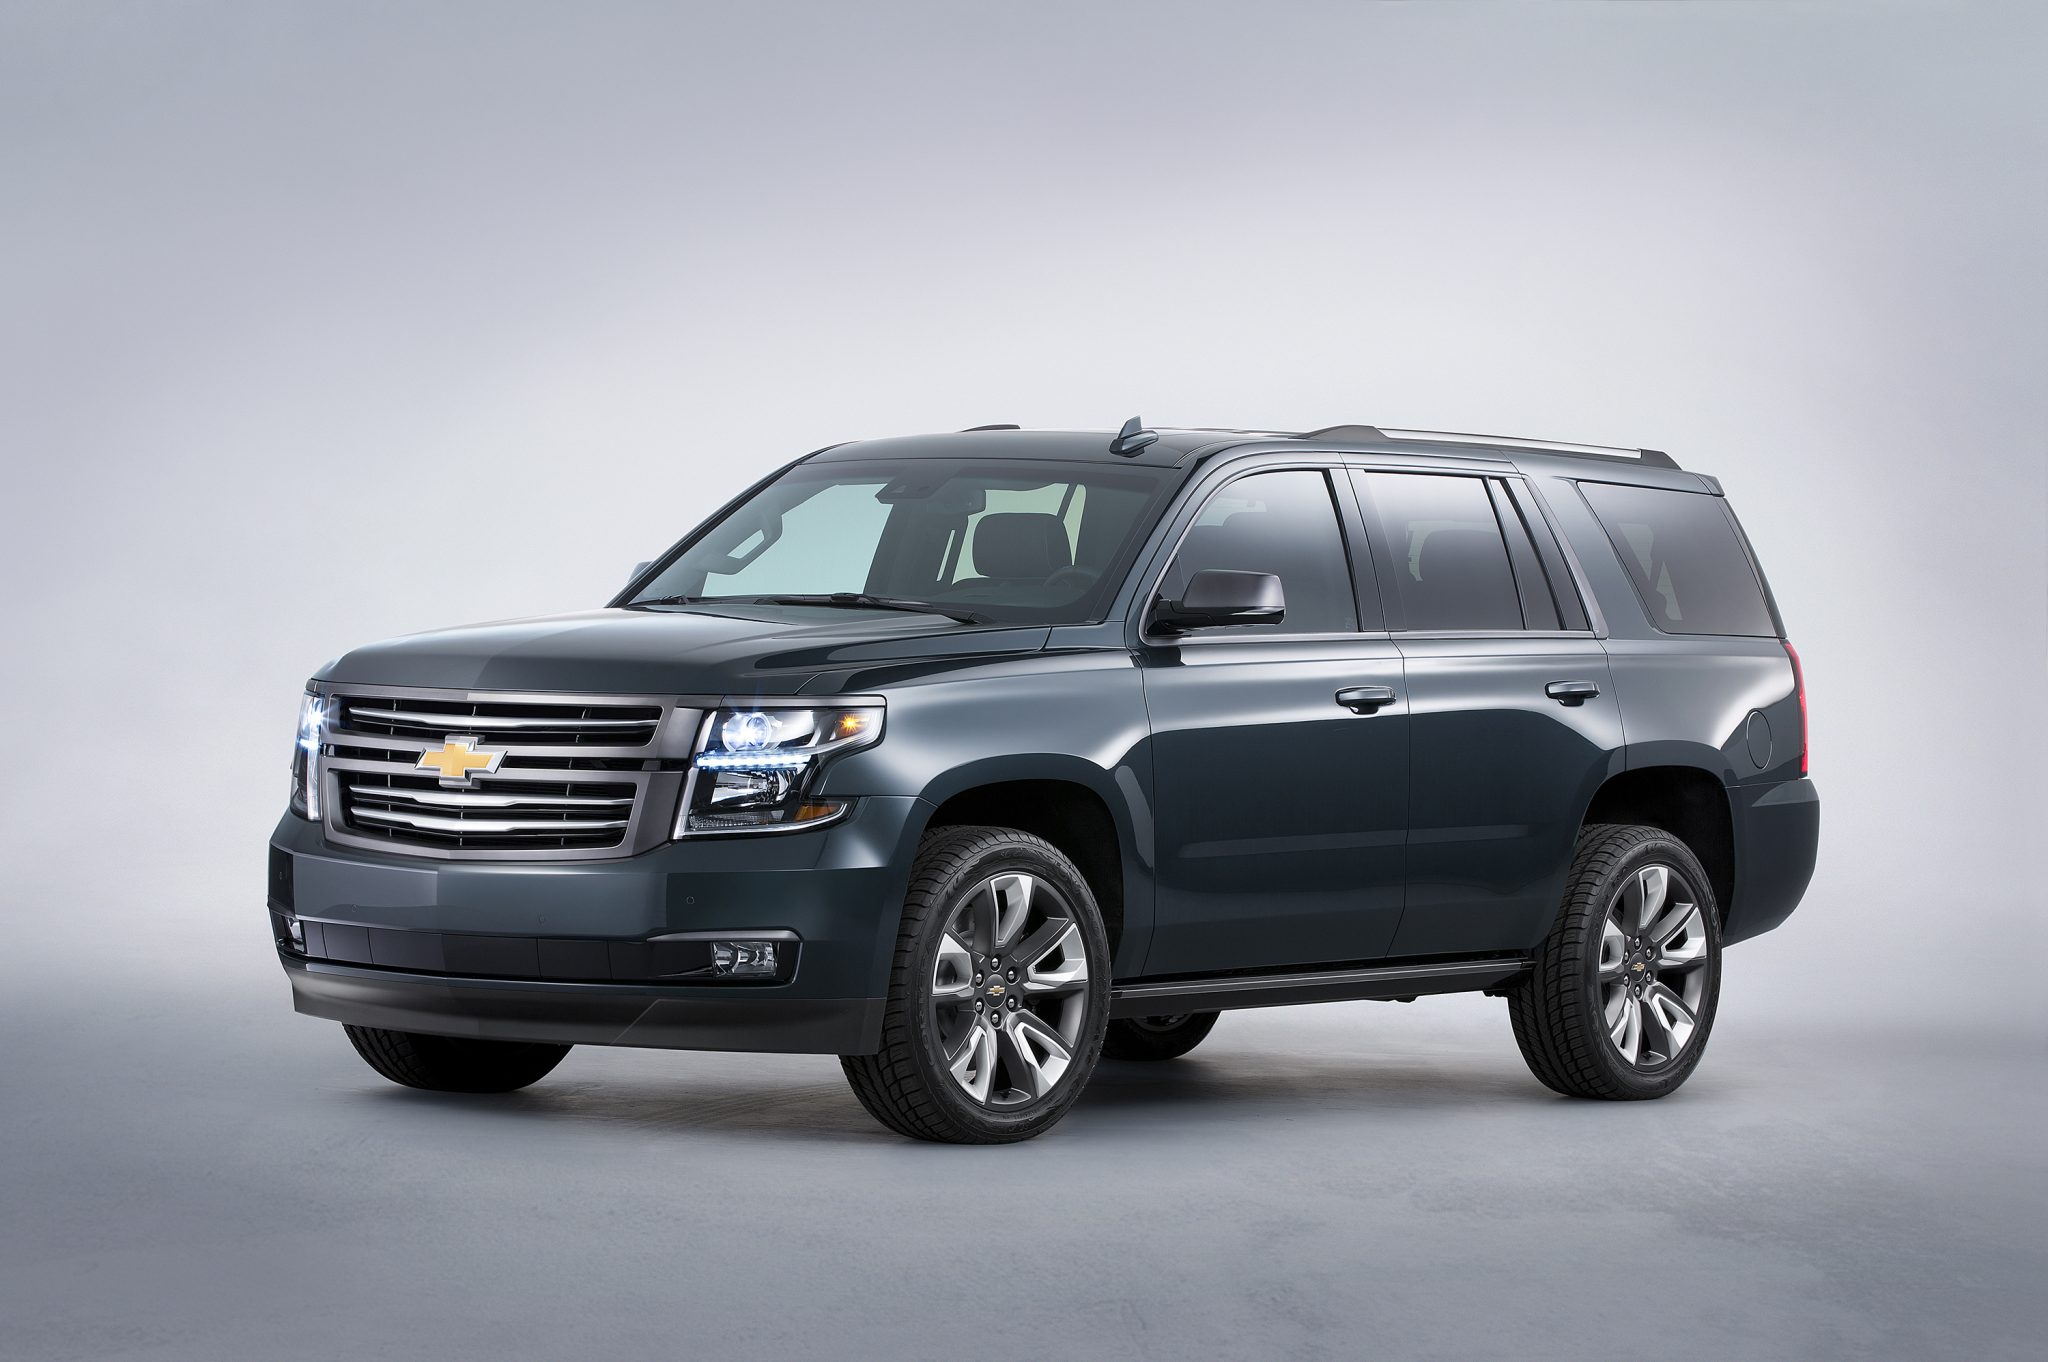 Chevy's Truck and SUV SEMA Concepts Showcase Luxury - The News Wheel